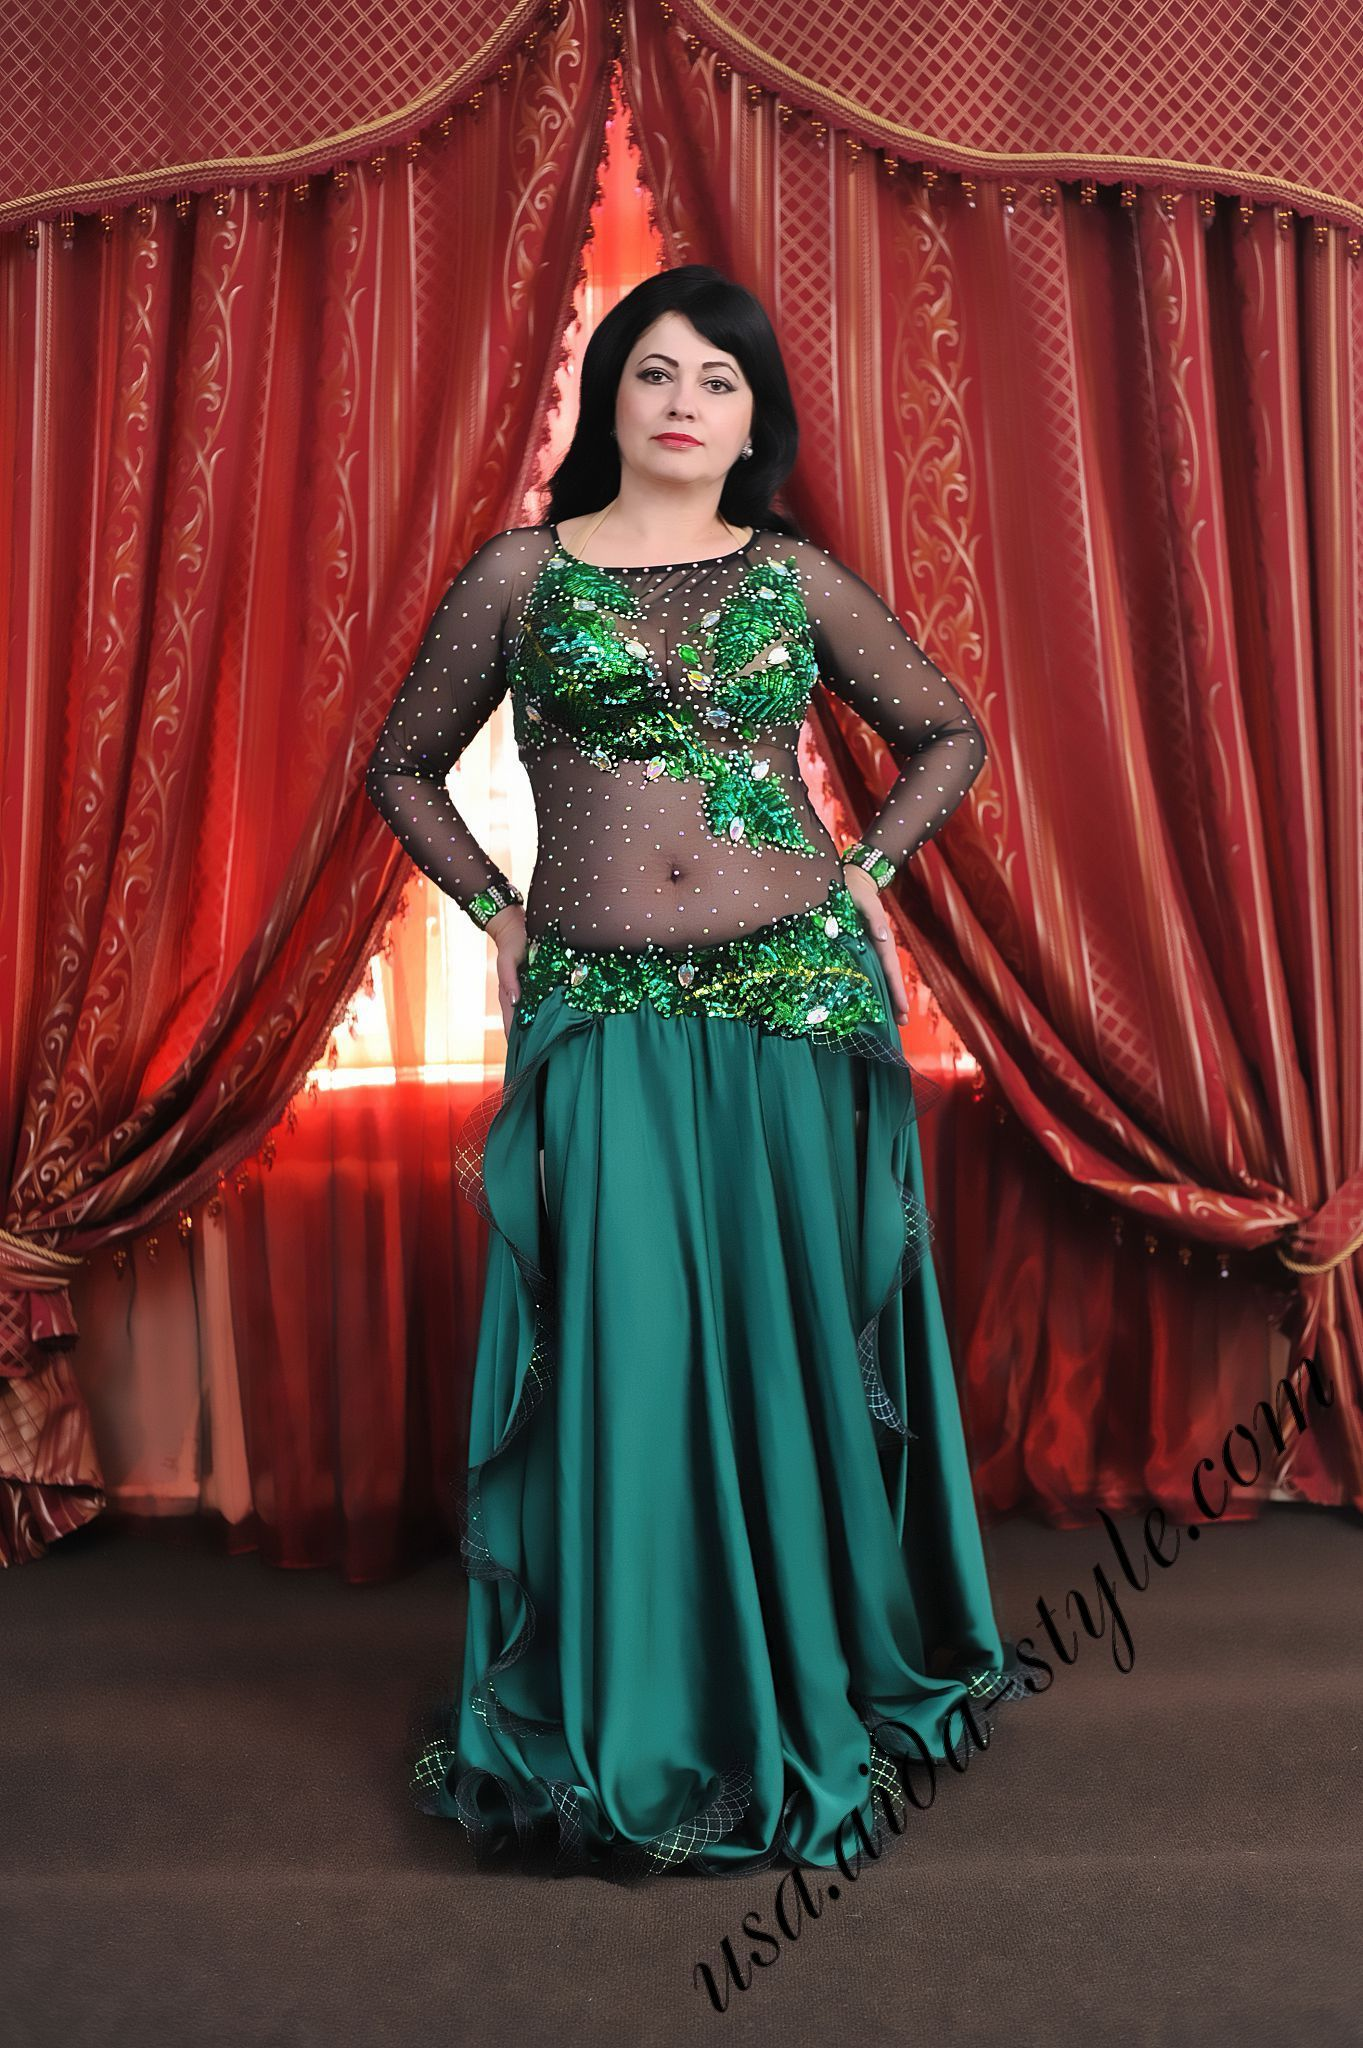 e28cb08f09e Image result for plus size belly dance